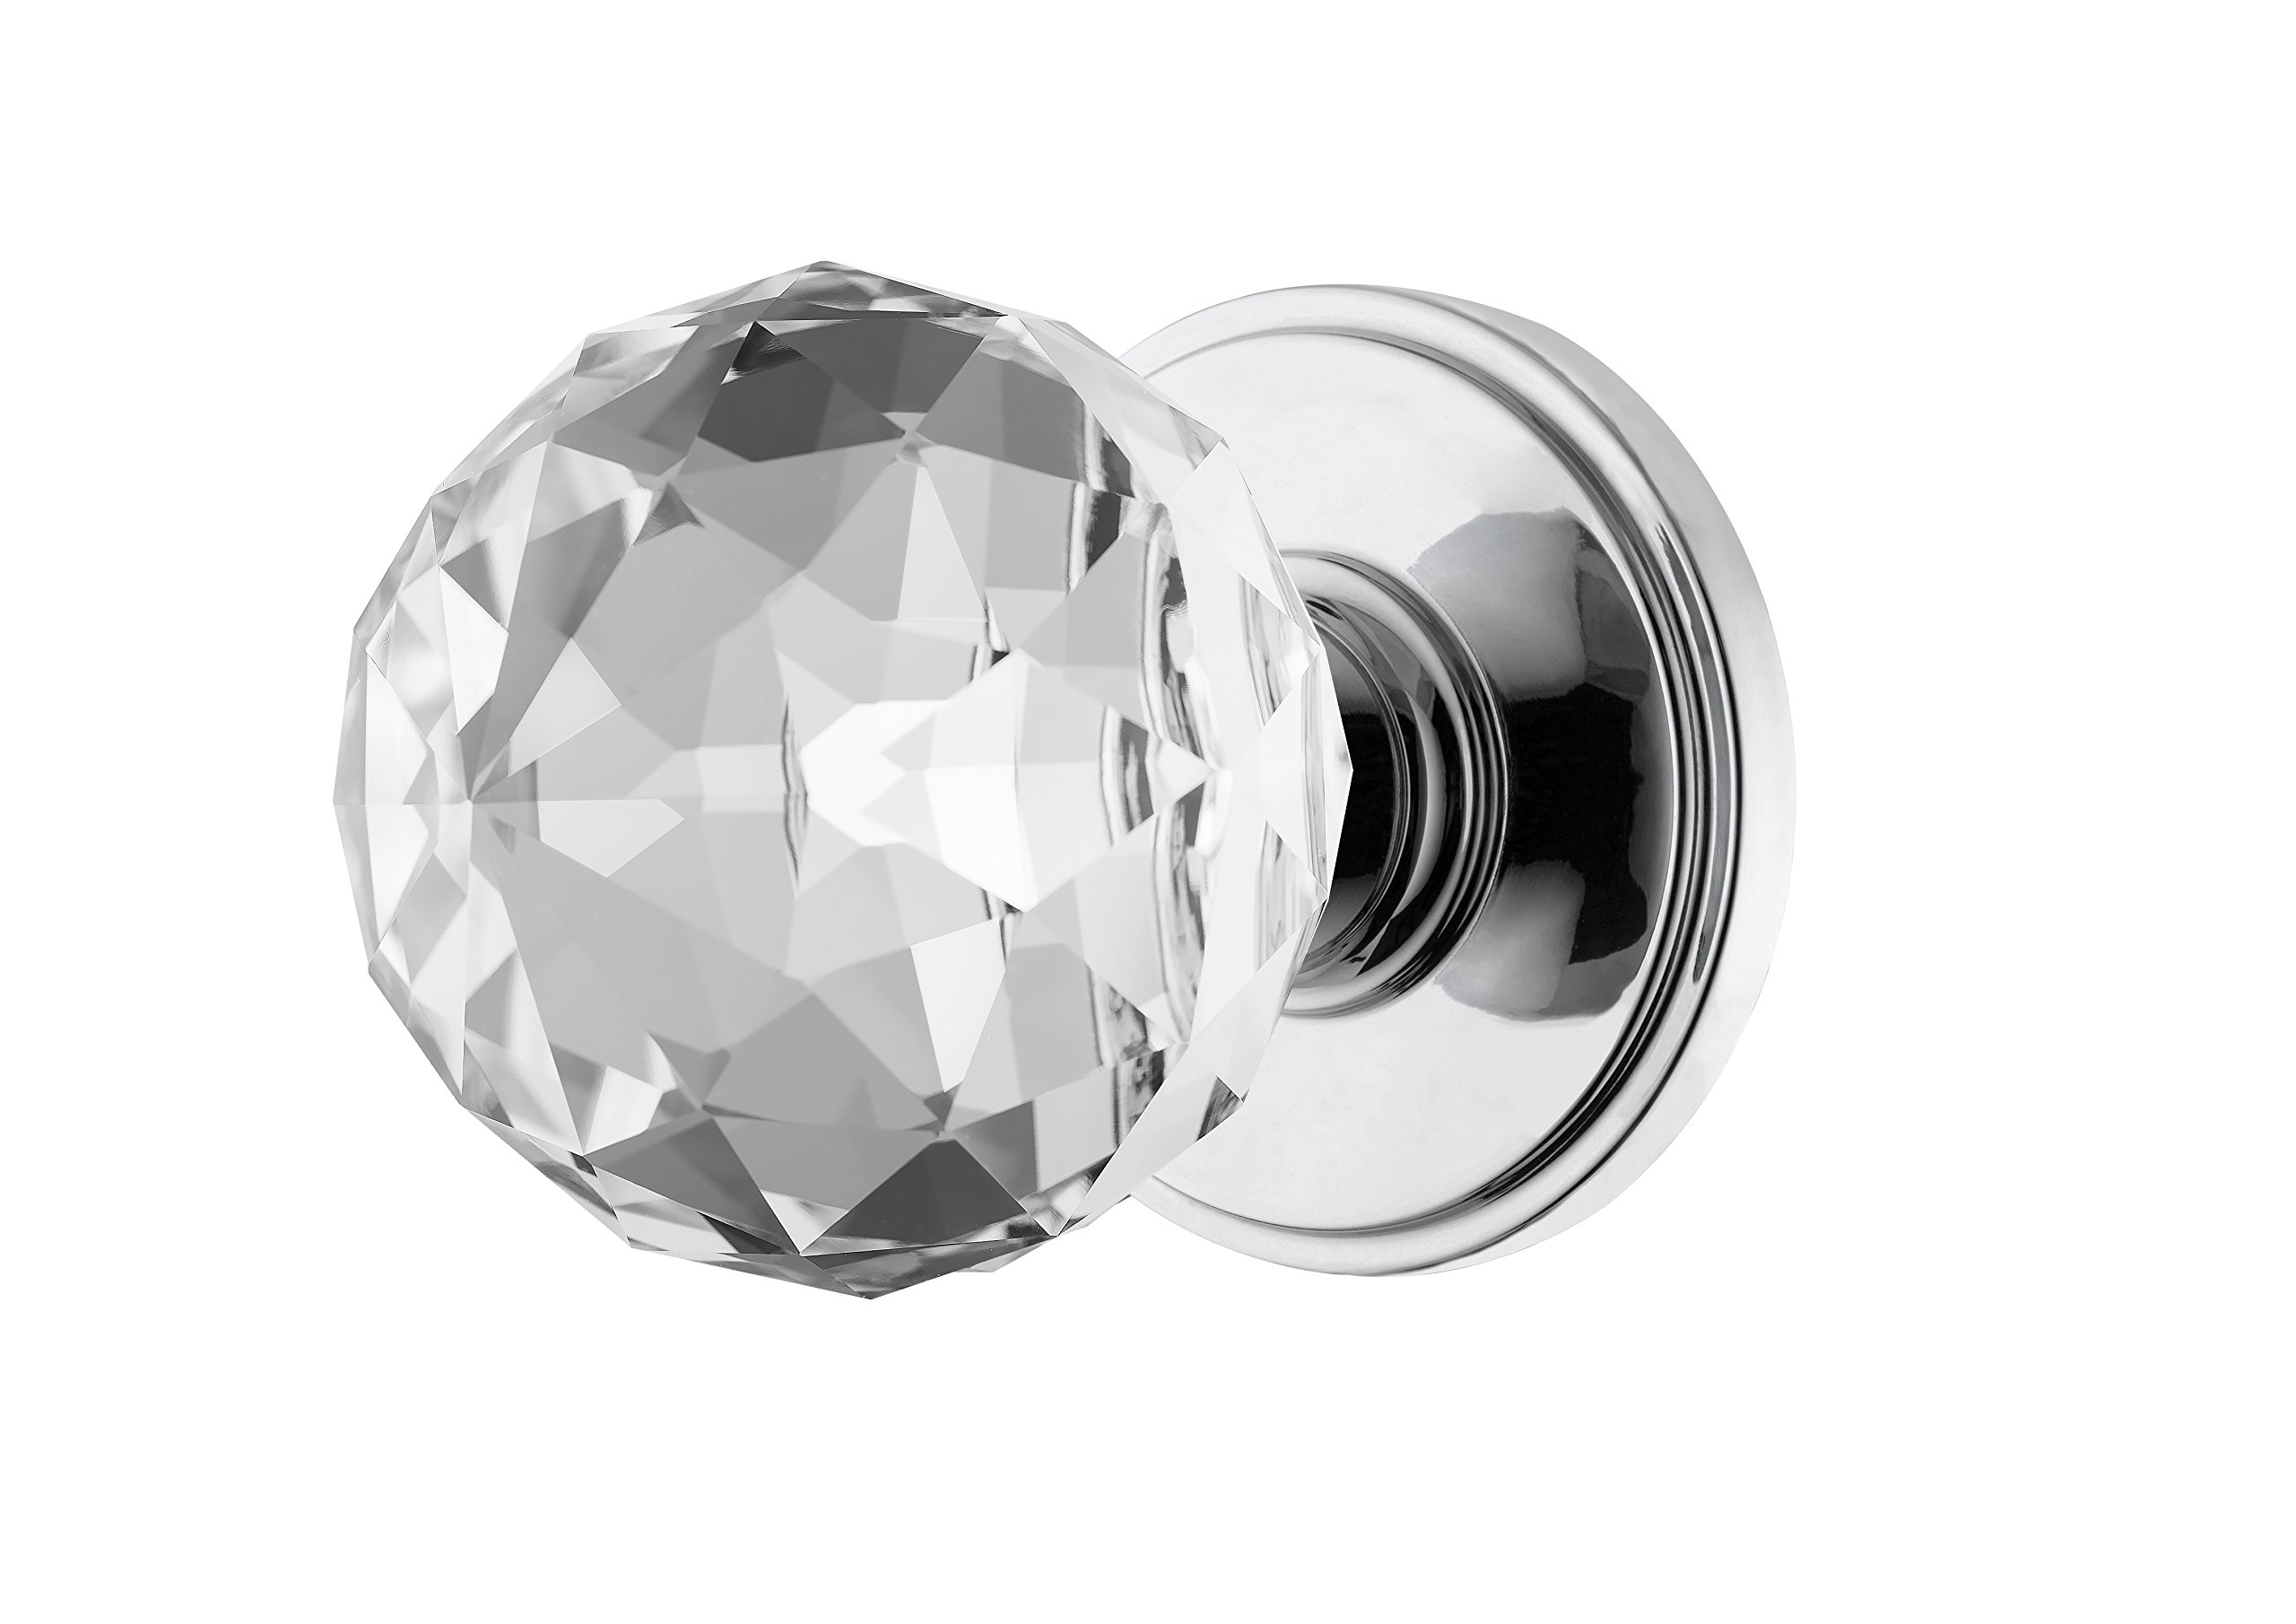 Decor Living, AMG and Enchante Accessories Faceted Crystal Door Knobs with Lock, Privacy Function for Bed and Bath, IRIS Collection, DK04C-PR POC, Polished Chrome